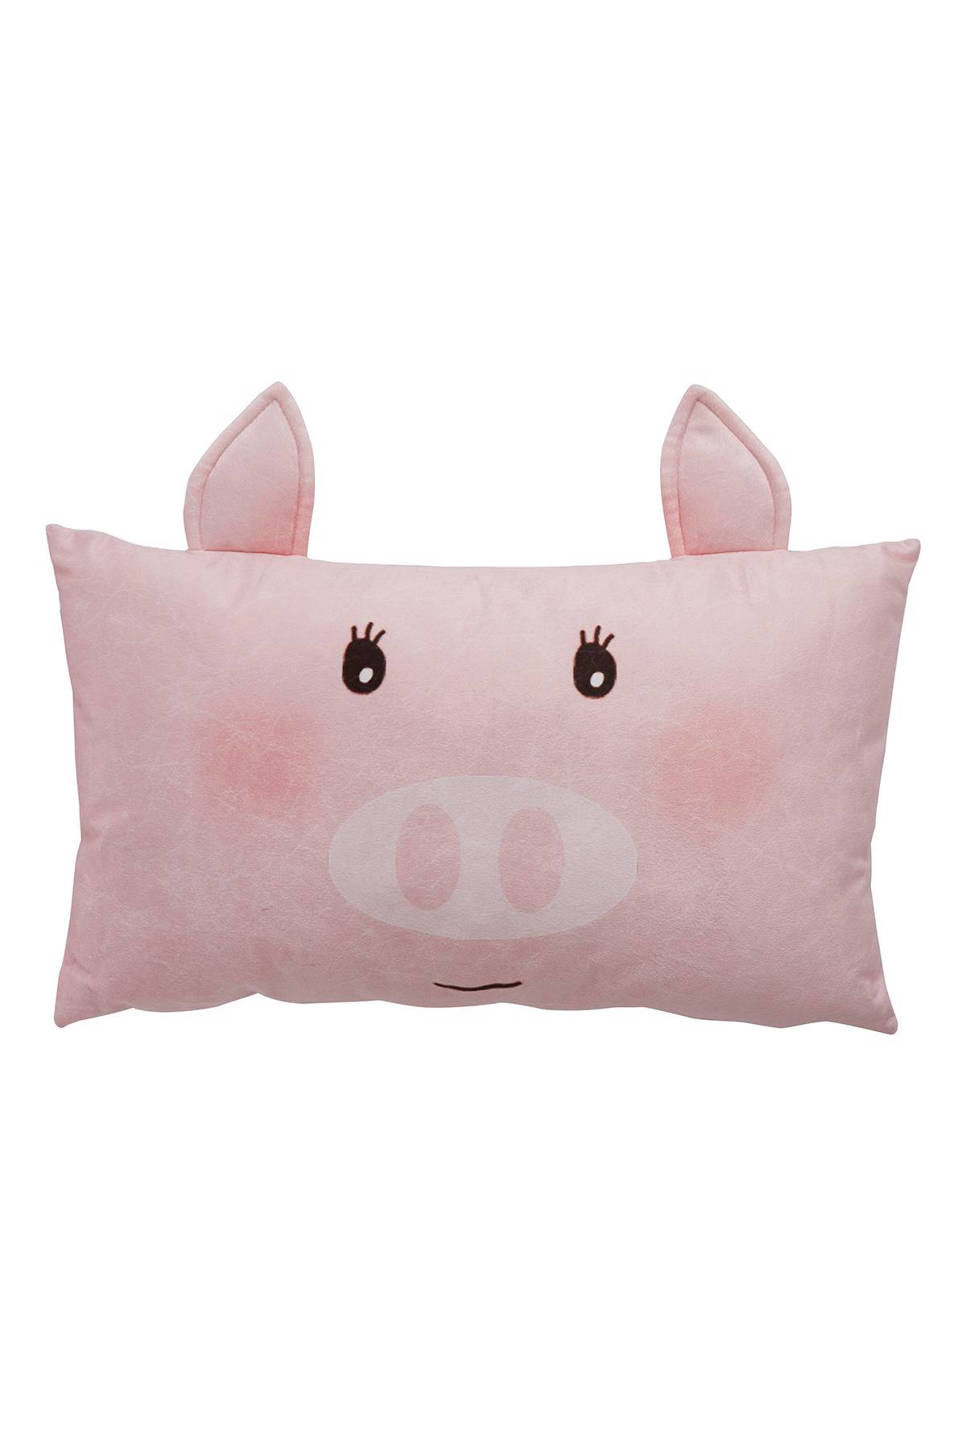 Covers & Co sierkussen Piggy (30x50 cm) , Roze